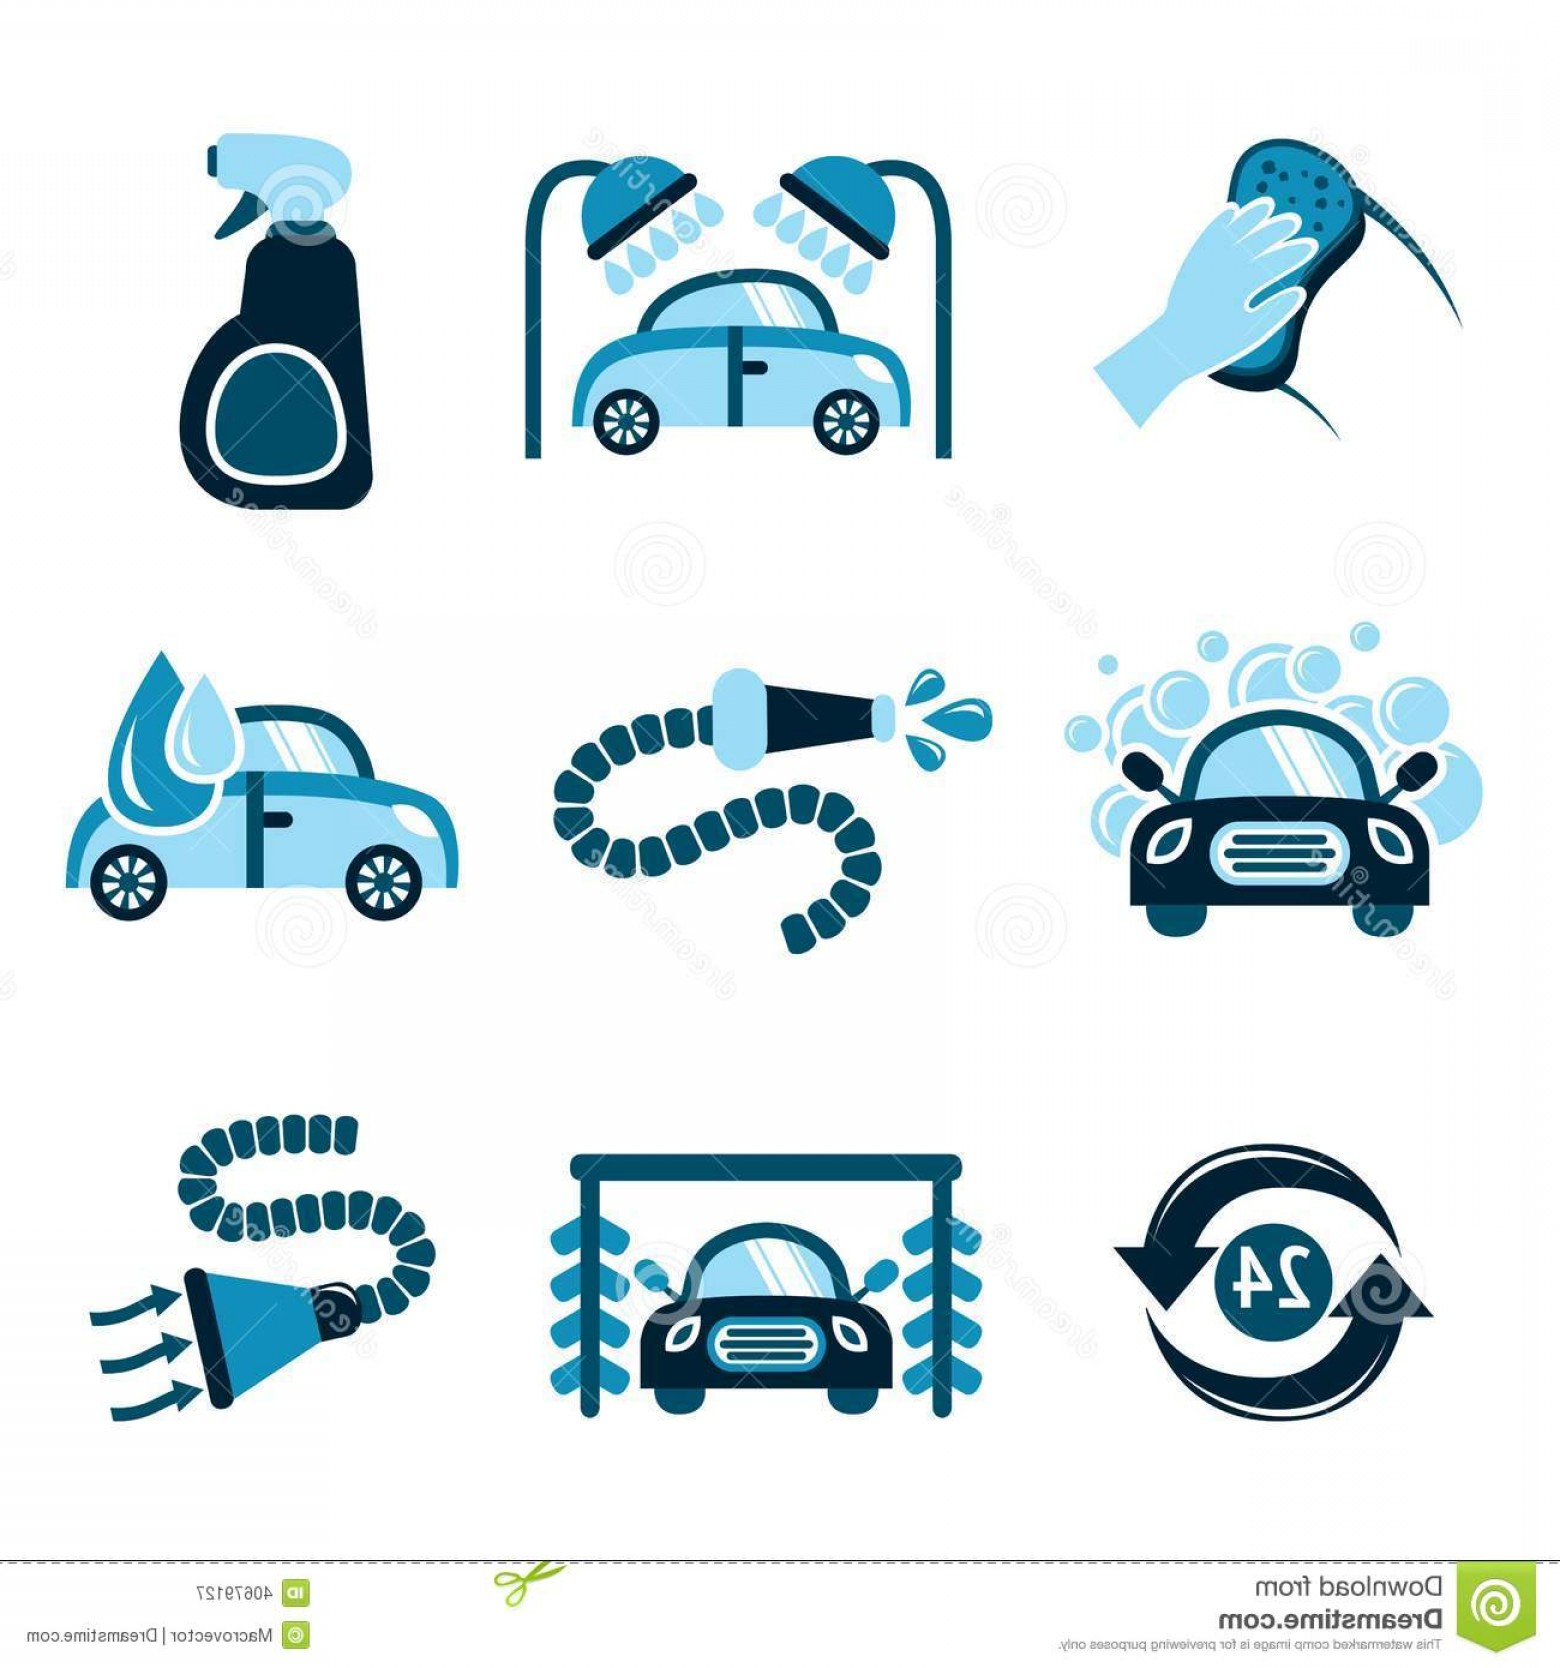 Car Wash Vector Graphics: Royalty Free Stock Photo Car Wash Hand Hold Sponge Over Washing Vector Illustration Image